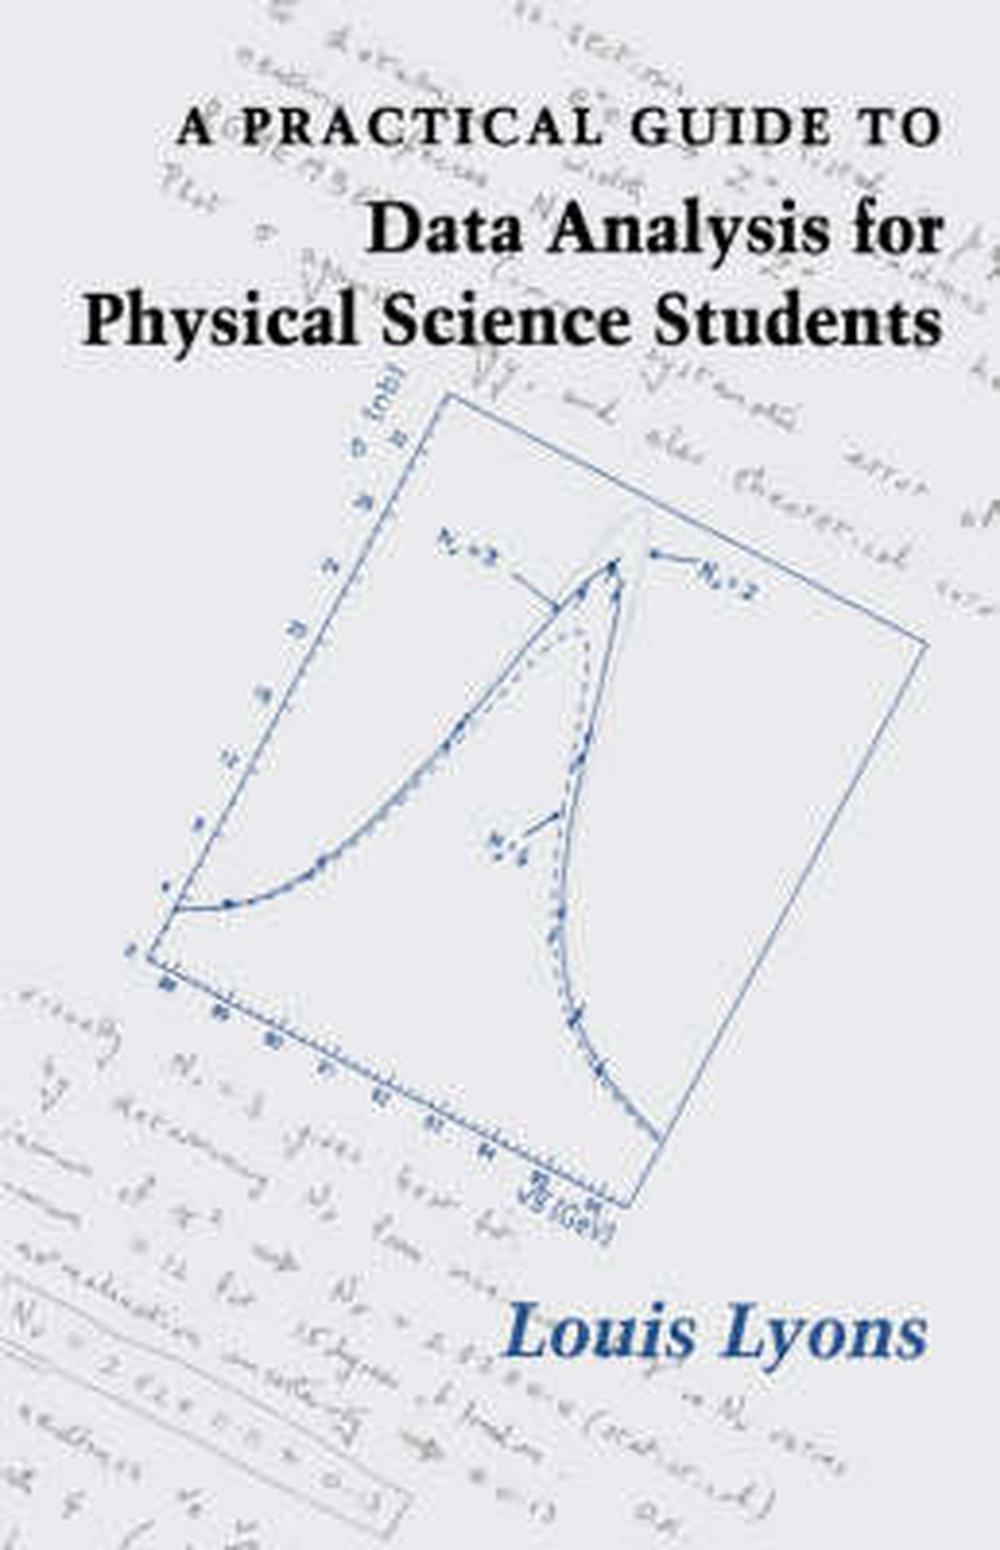 A Practical Guide to Data Analysis for Physical Science